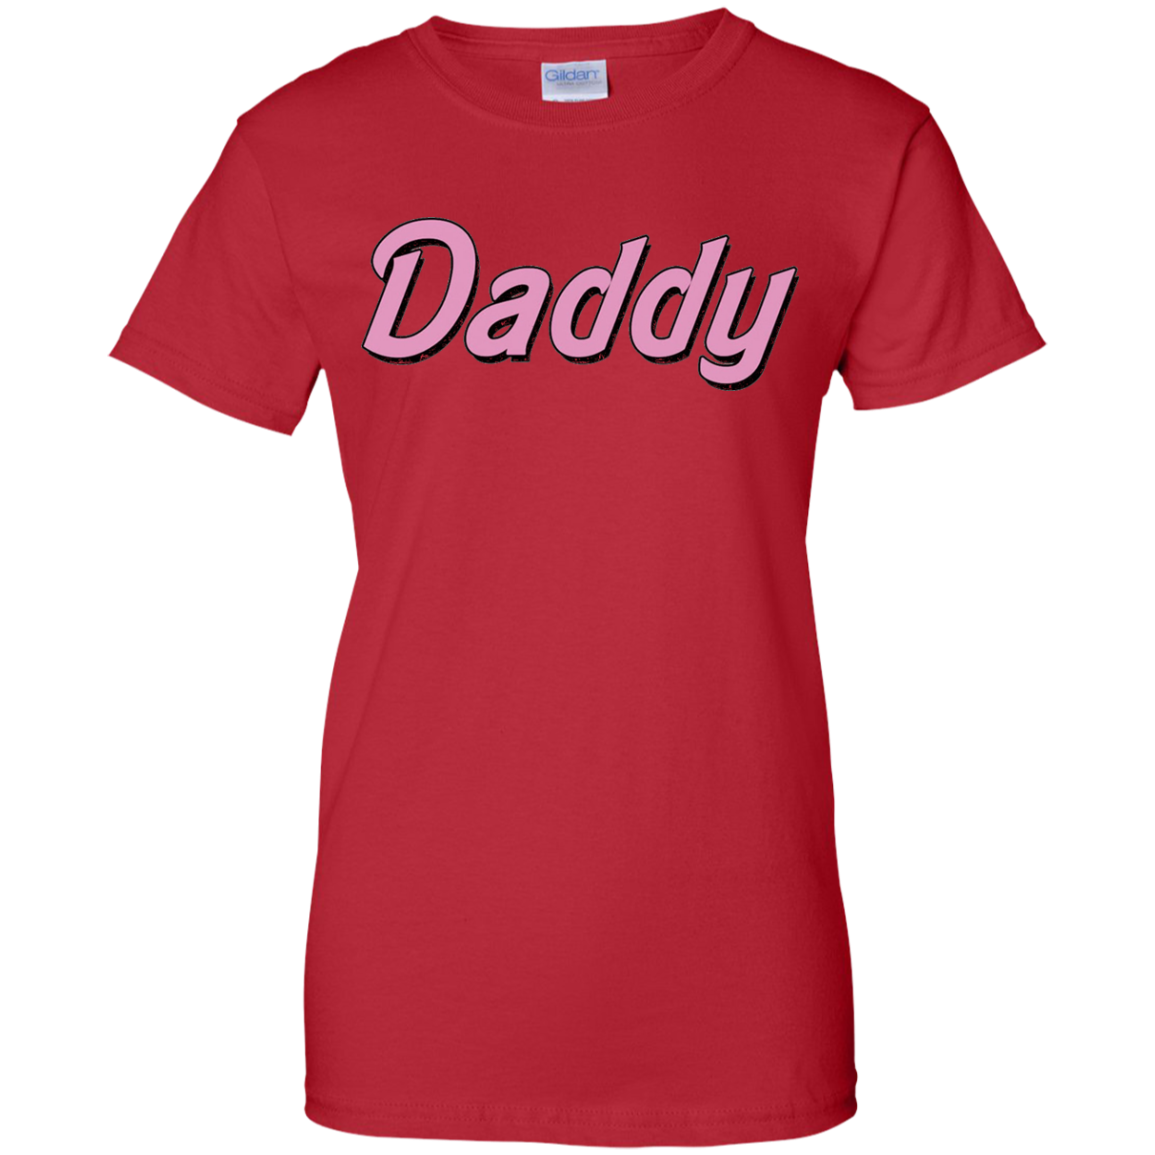 Teedillo Daddy T-Shirts